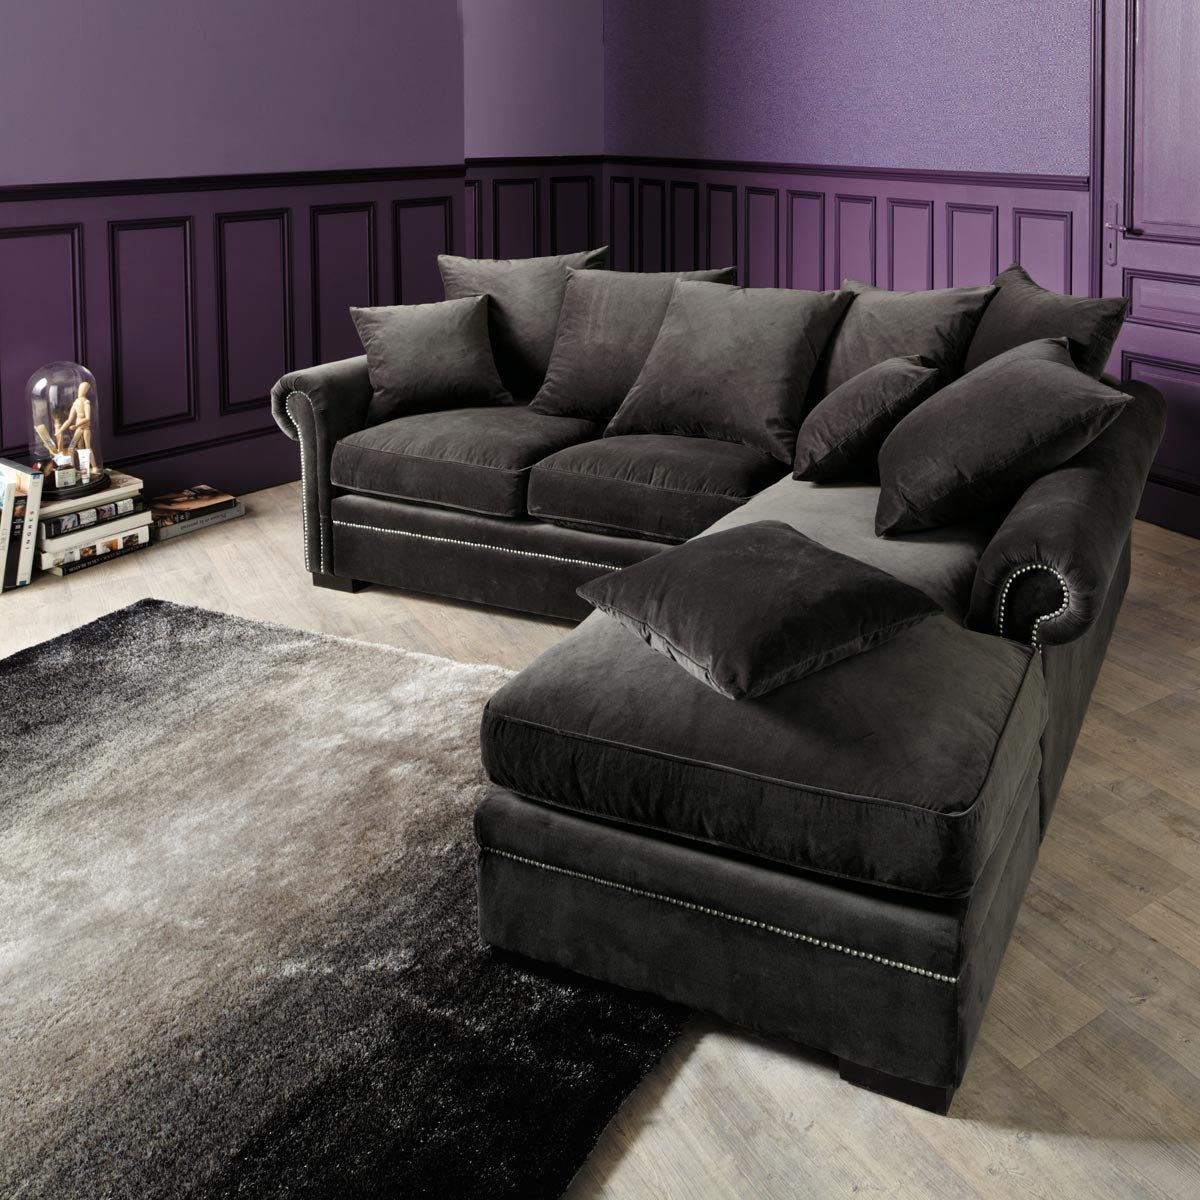 Charcoal Gray Sectional Sofa With Design Picture 19456 | Kengire For Charcoal Gray Sectional Sofas (Image 3 of 20)